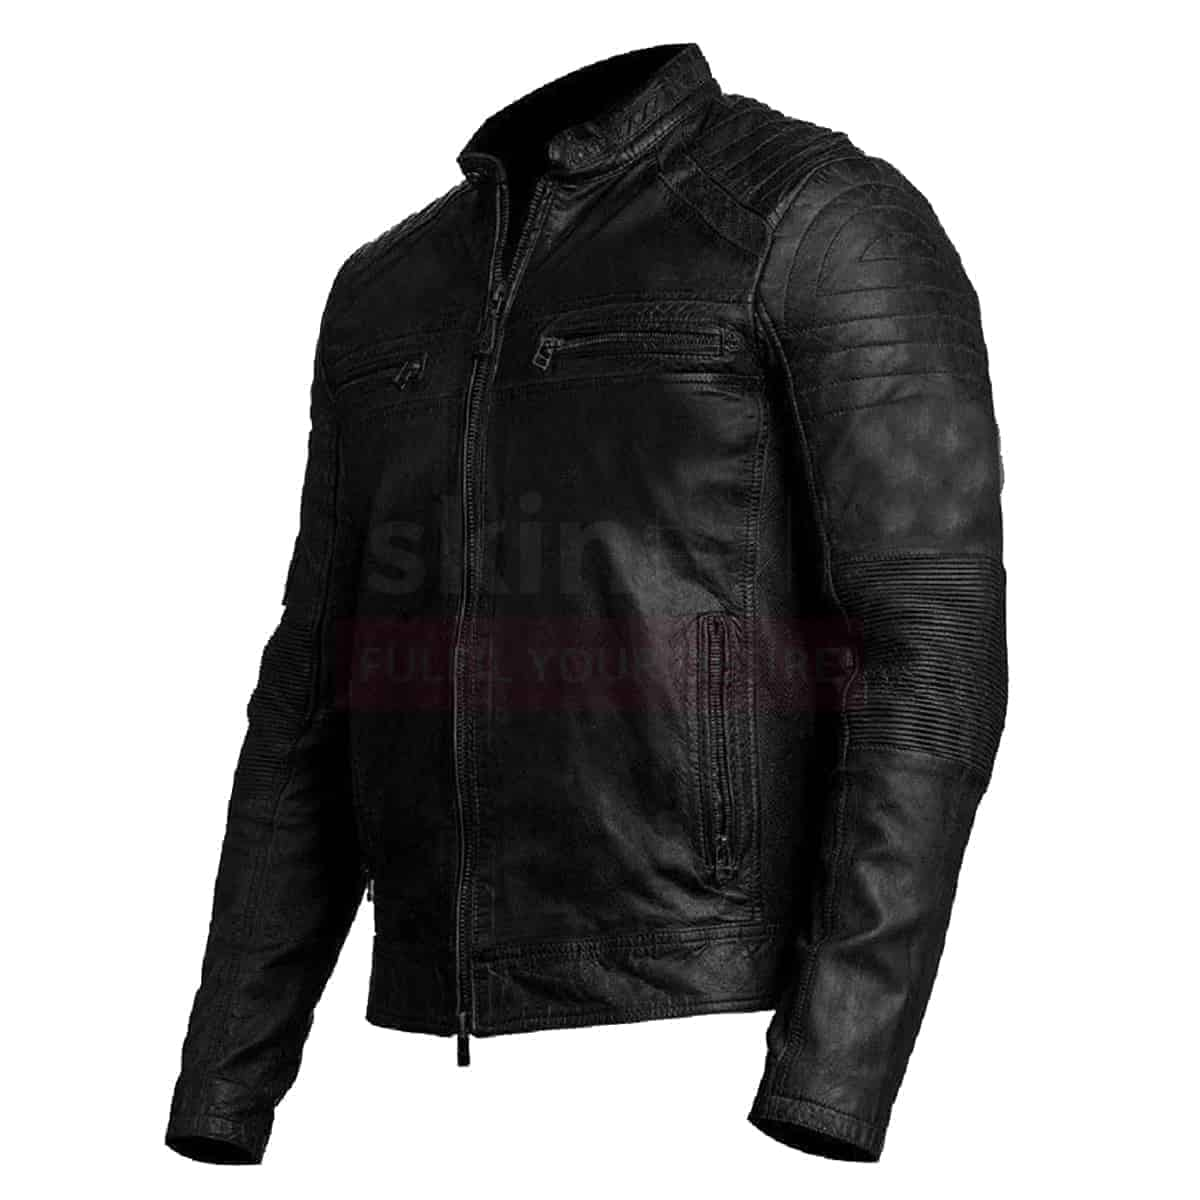 94adb8c380658 Cafe Racer 1 Jacket